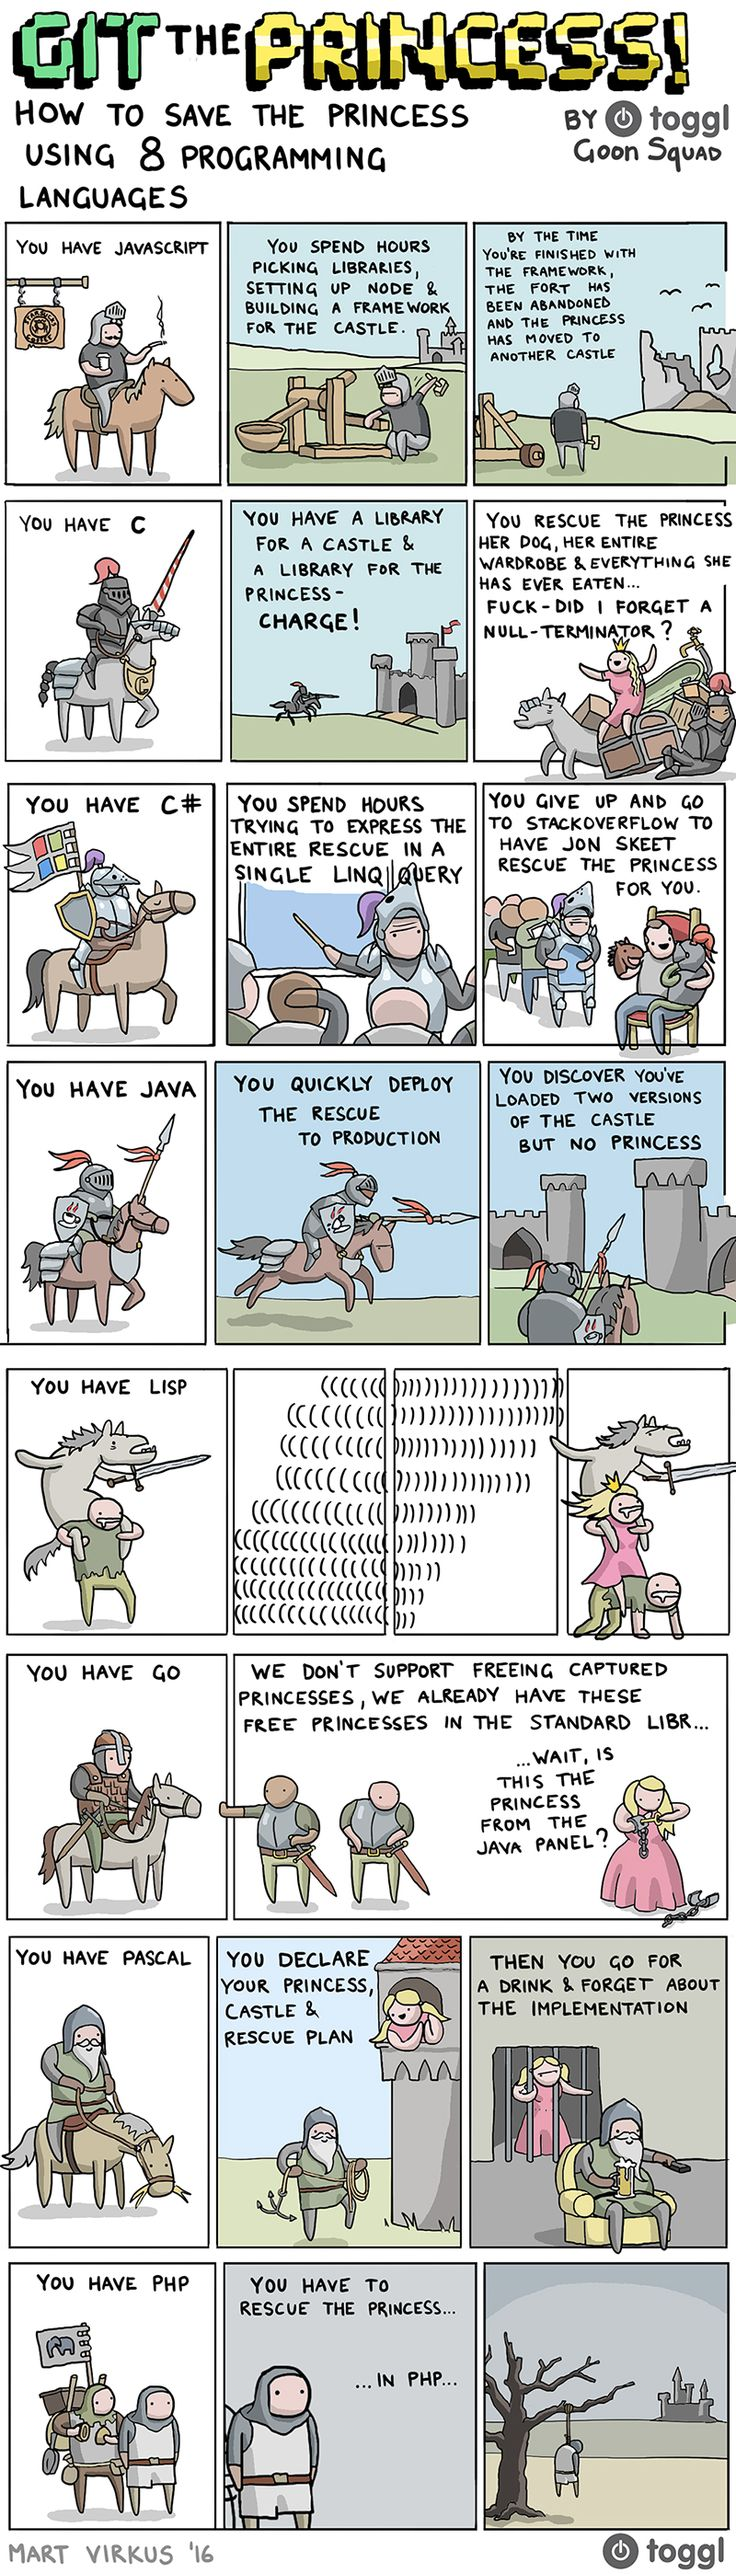 How to save the princess in 8 programming languages. Cumon, laravel has made PHP an absolute joy to use :D